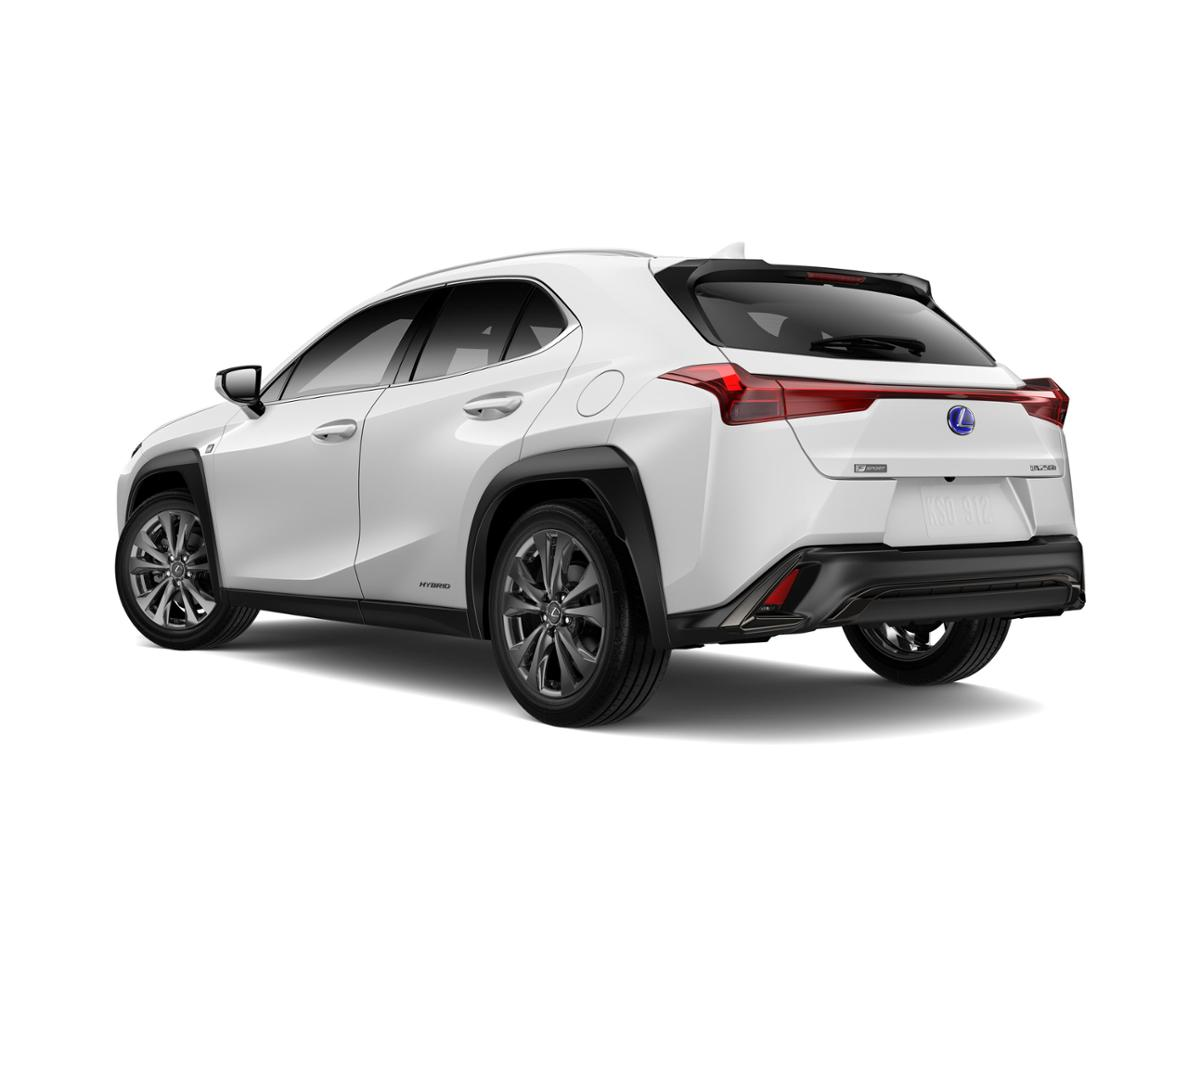 New 2019 Lexus UX 250h For Sale In Scottsdale Tempe Phoenix AZ. Earnhardt Lexus JTHU9JBH6K2004060